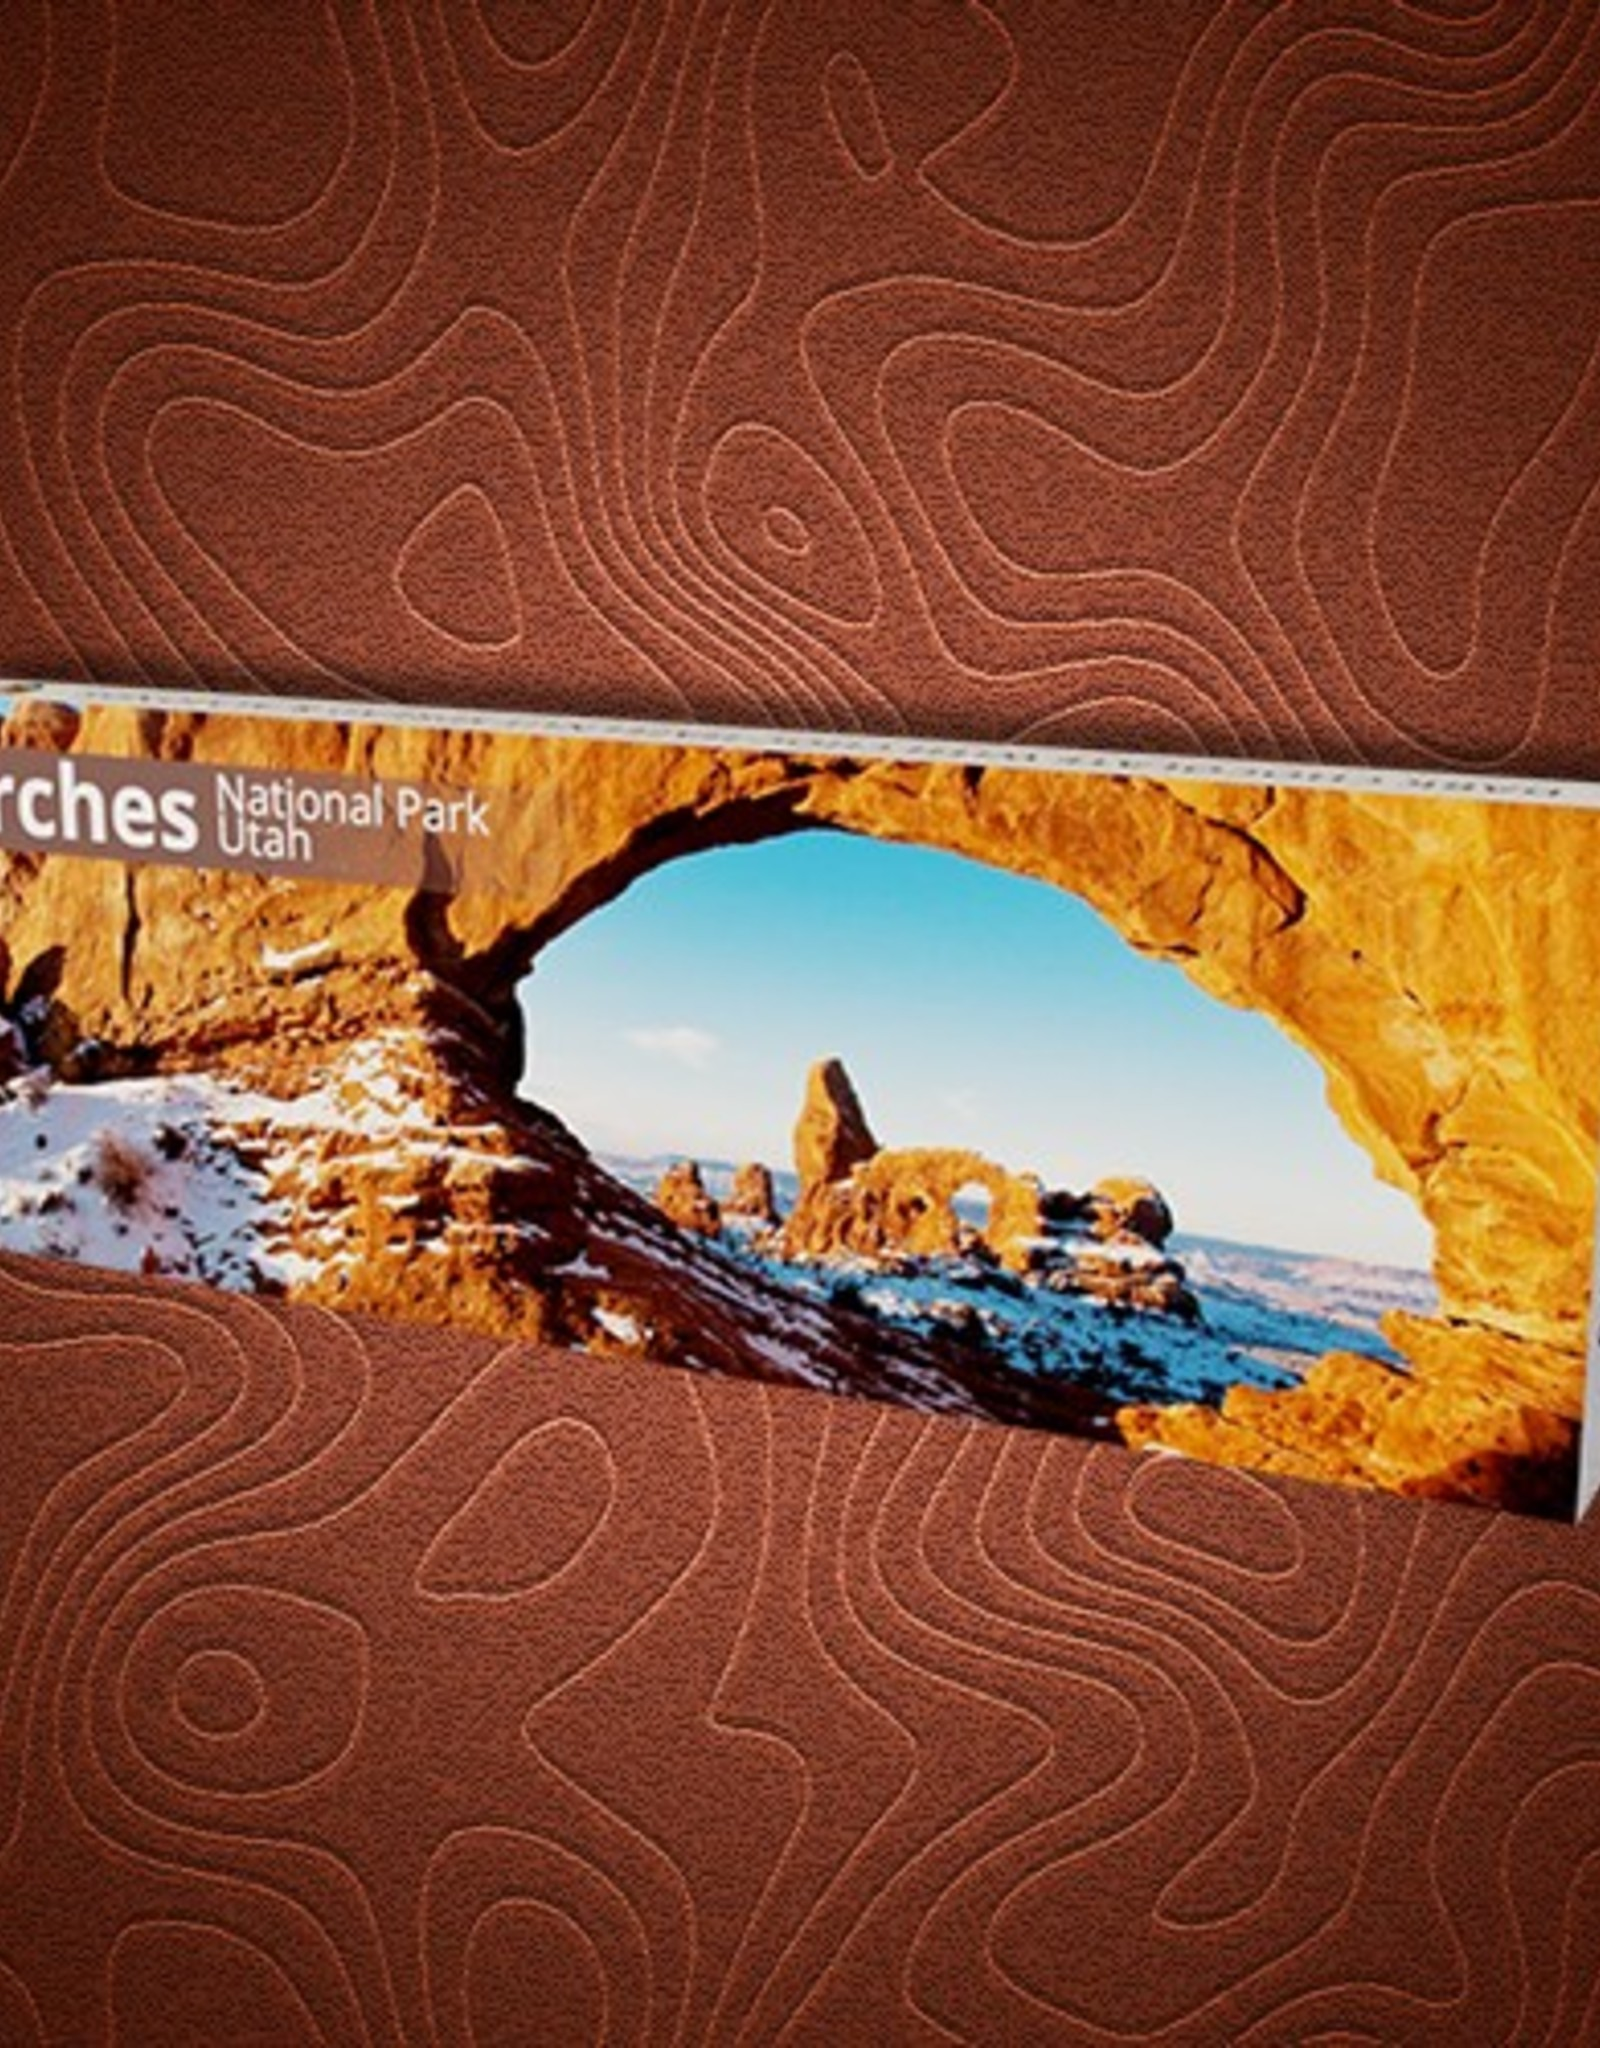 National Parks Collection - Arches National Park Bar